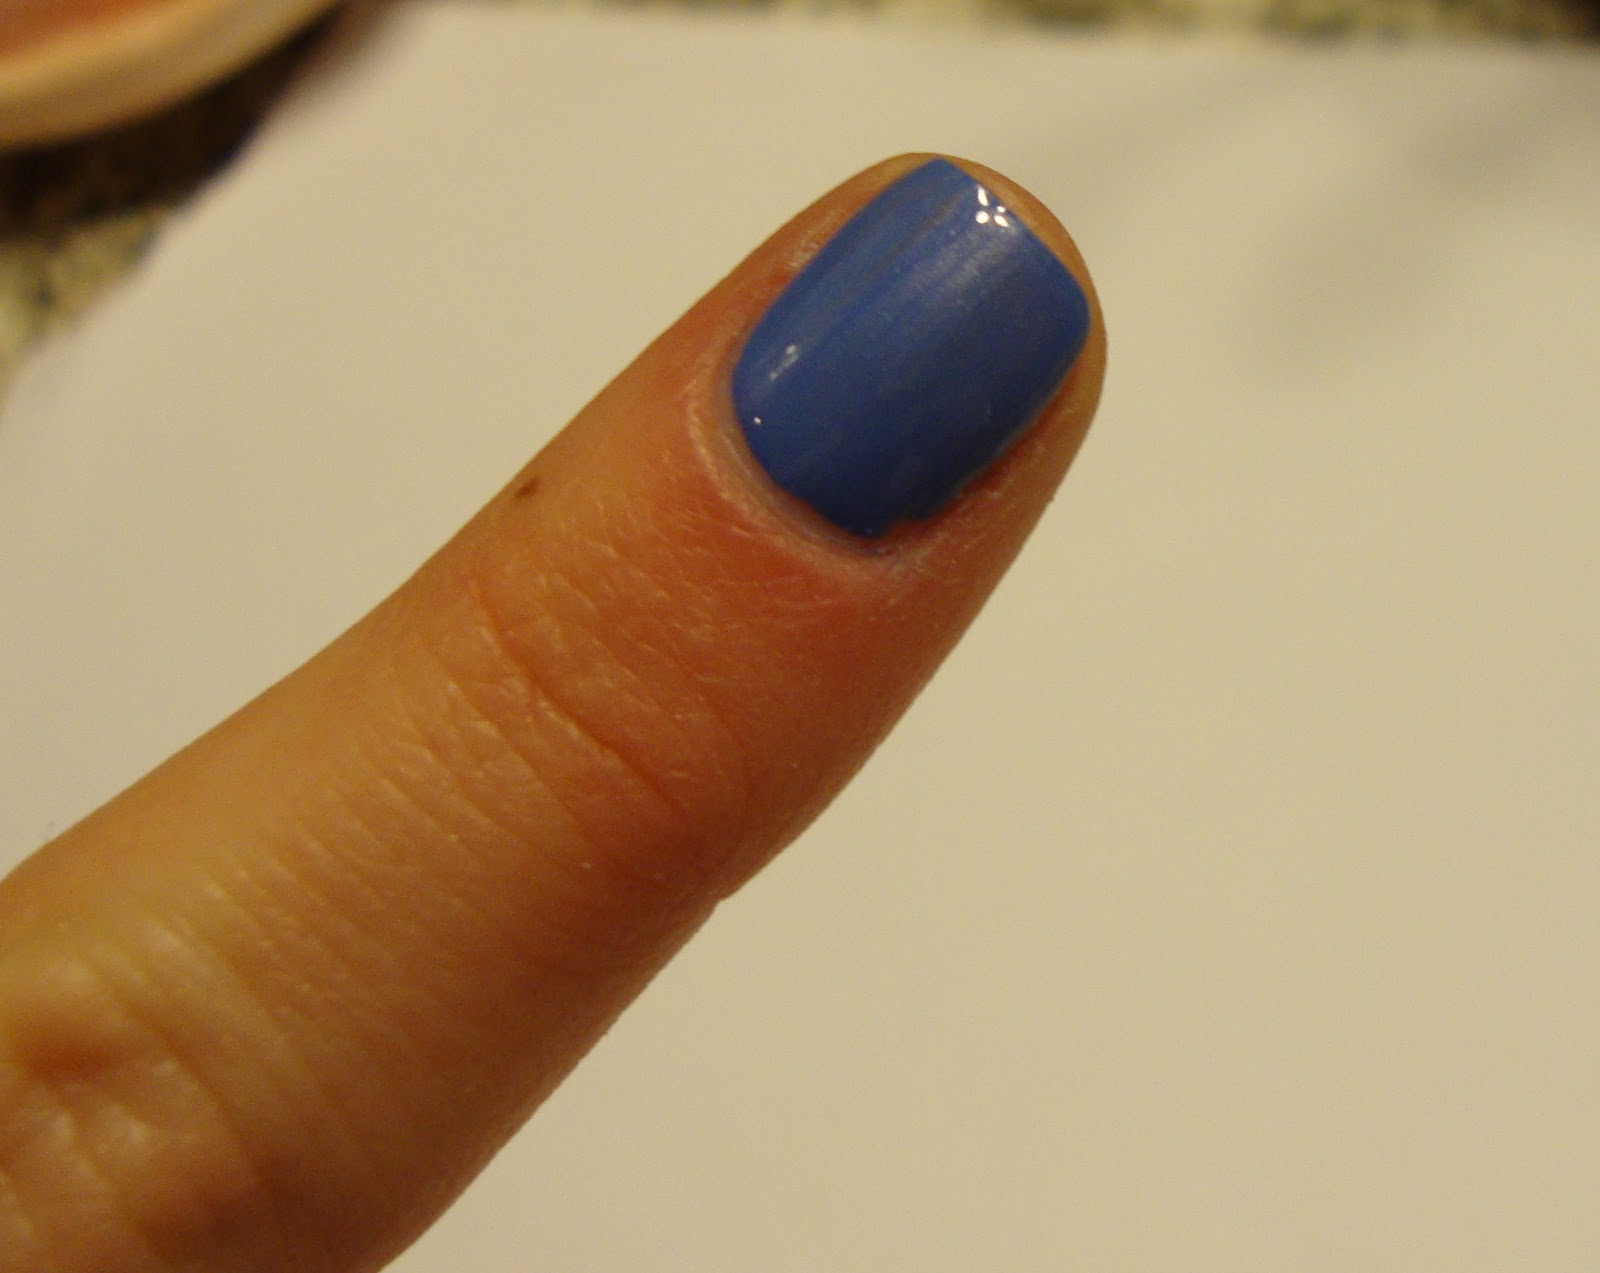 Possibly Polished: Tips on Tuesday: Nice & Neat Painted Nails